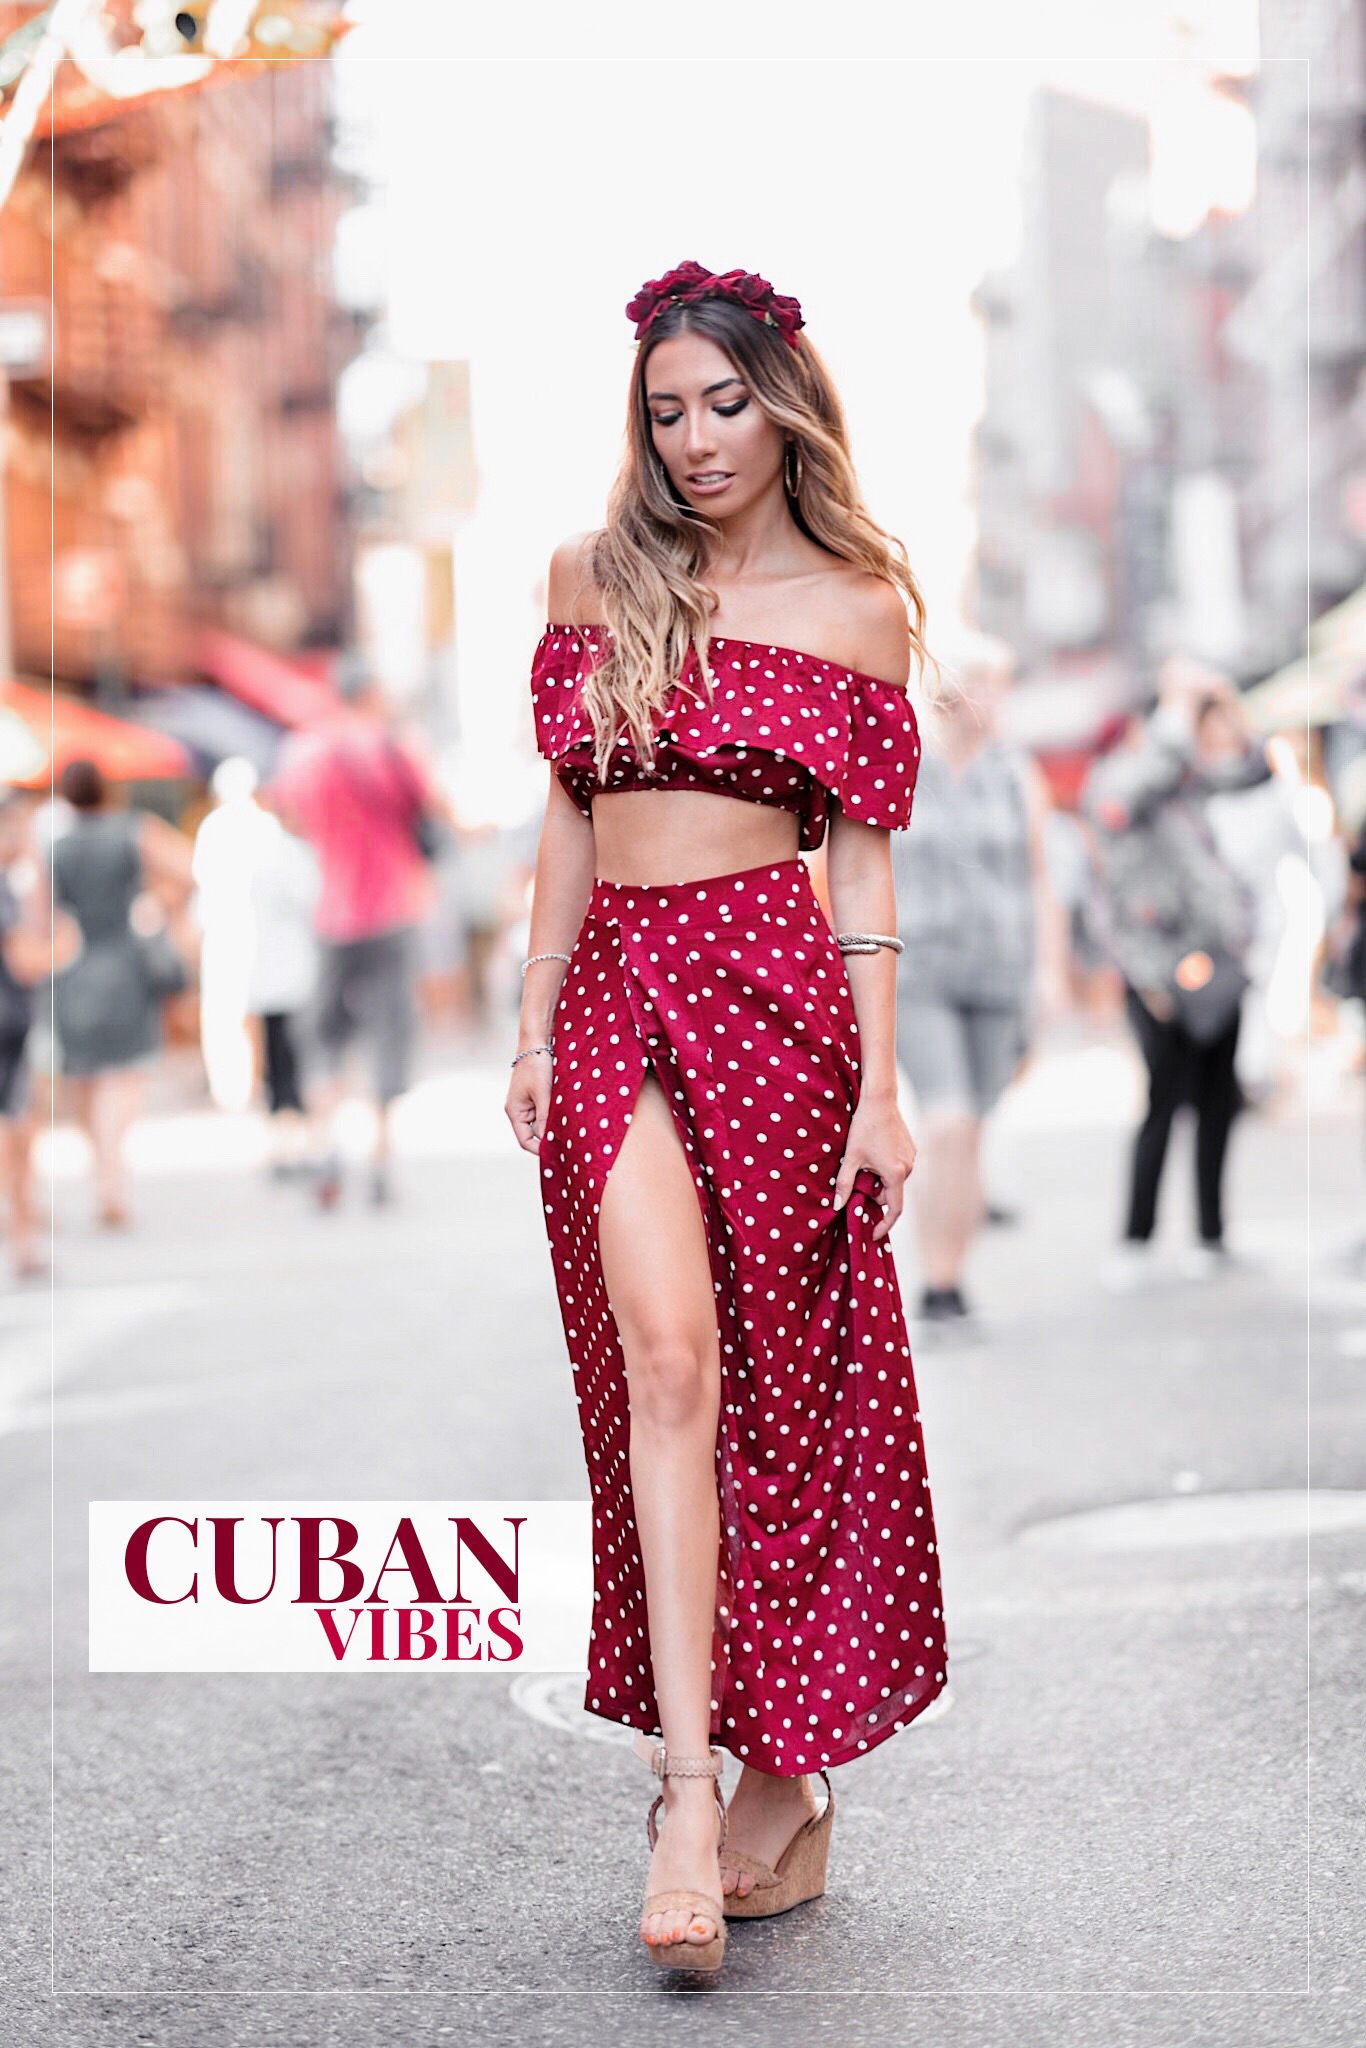 Cuba Vibes Outfit. What to wear in Cuba?